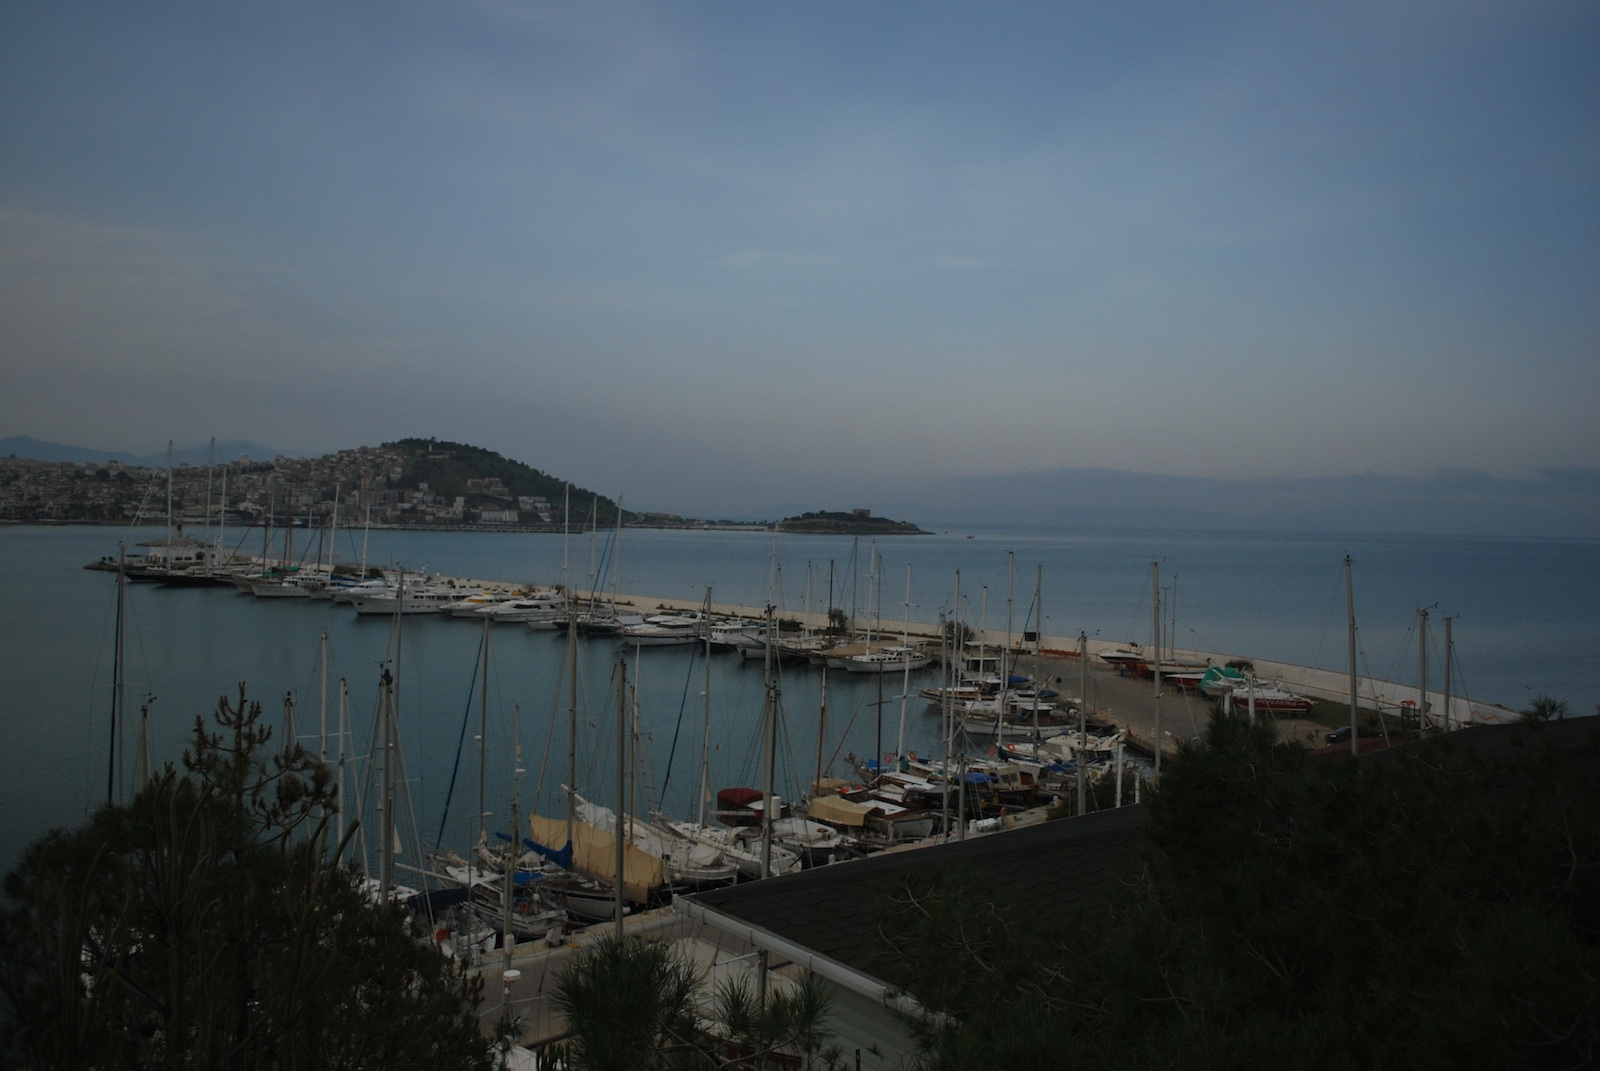 Aegean Sea - View in the morning